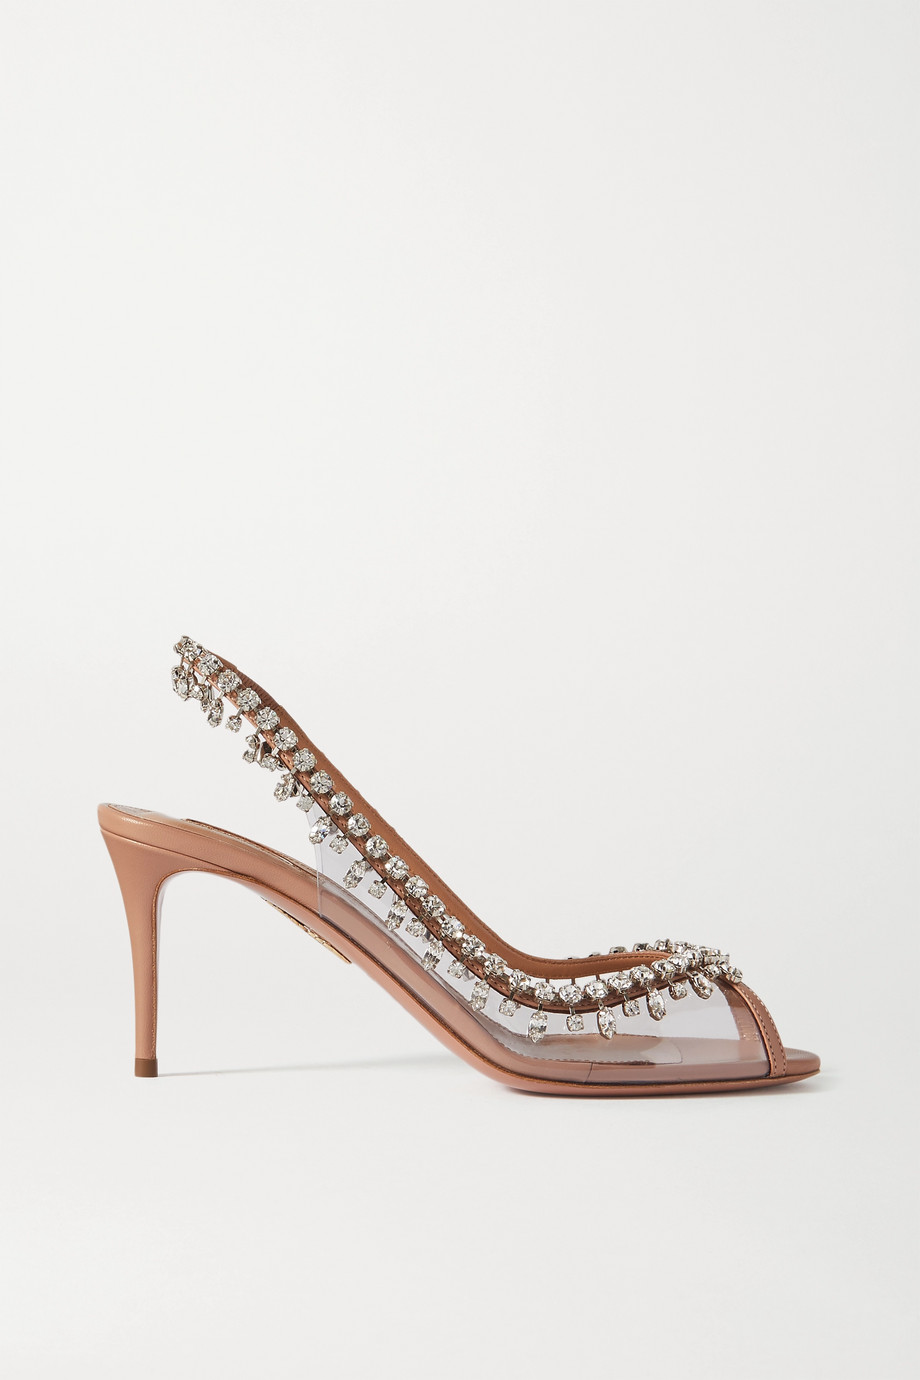 Aquazzura Temptation 75 crystal-embellished PVC and leather slingback sandals